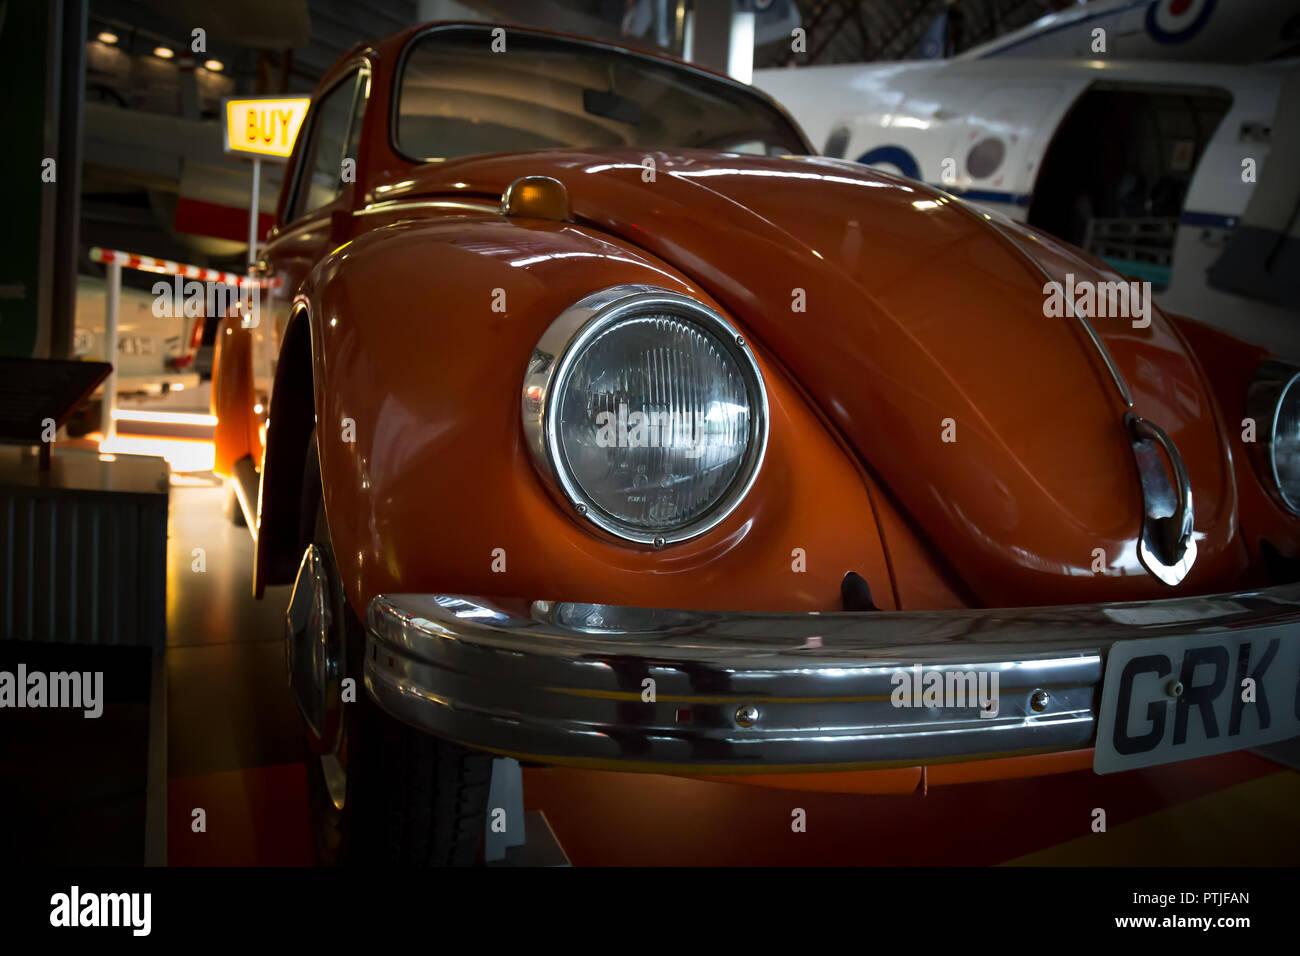 Arty, low-angle, landscape close up of burnt orange coloured Volkswagen Beetle, from the front. Car is stationary inside exhibition hall. - Stock Image